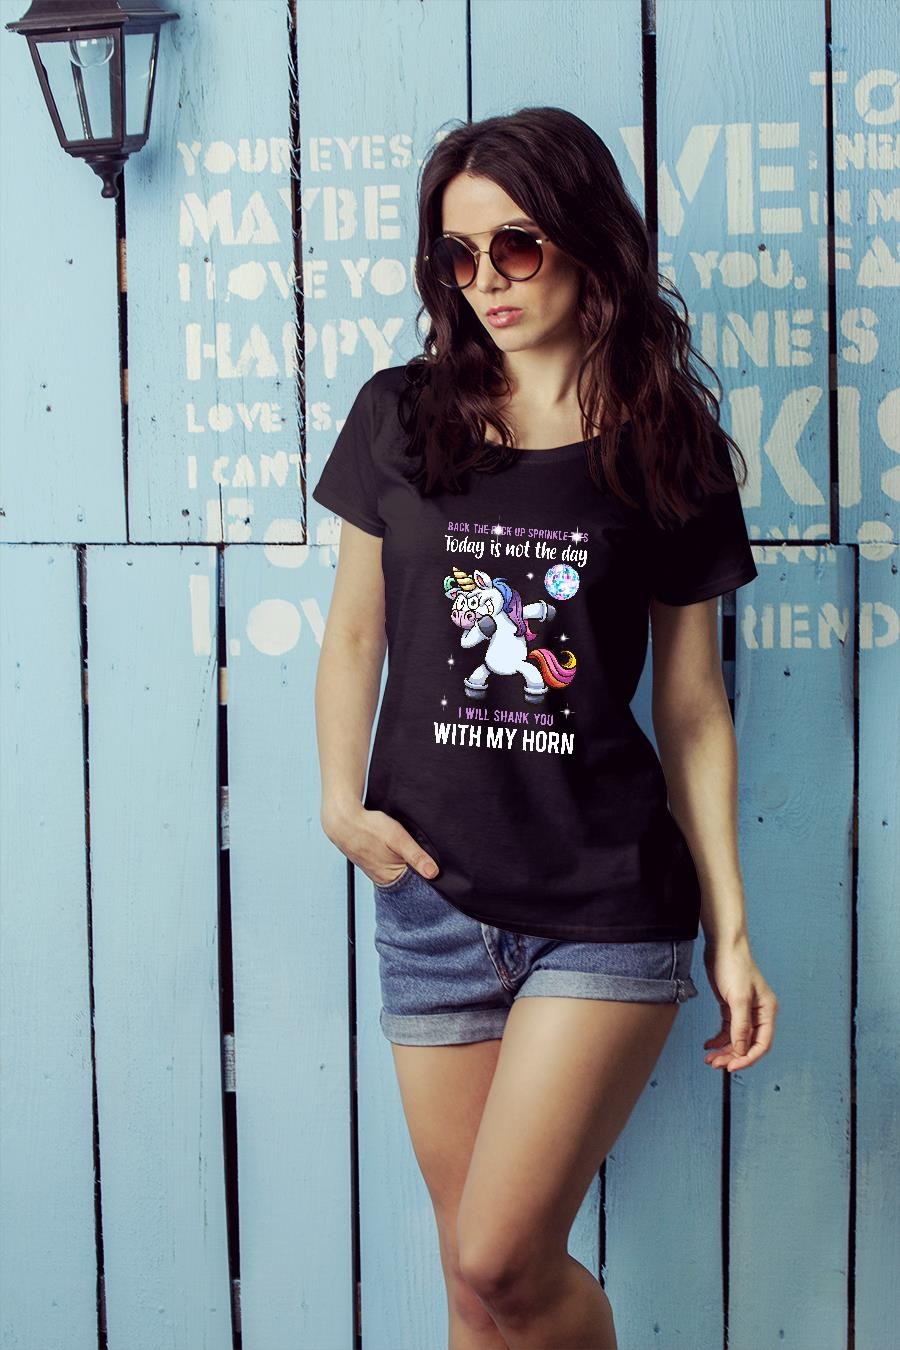 Unicorn dance back the fuck up sprinkle tits today is not the day shirt ladies tee official